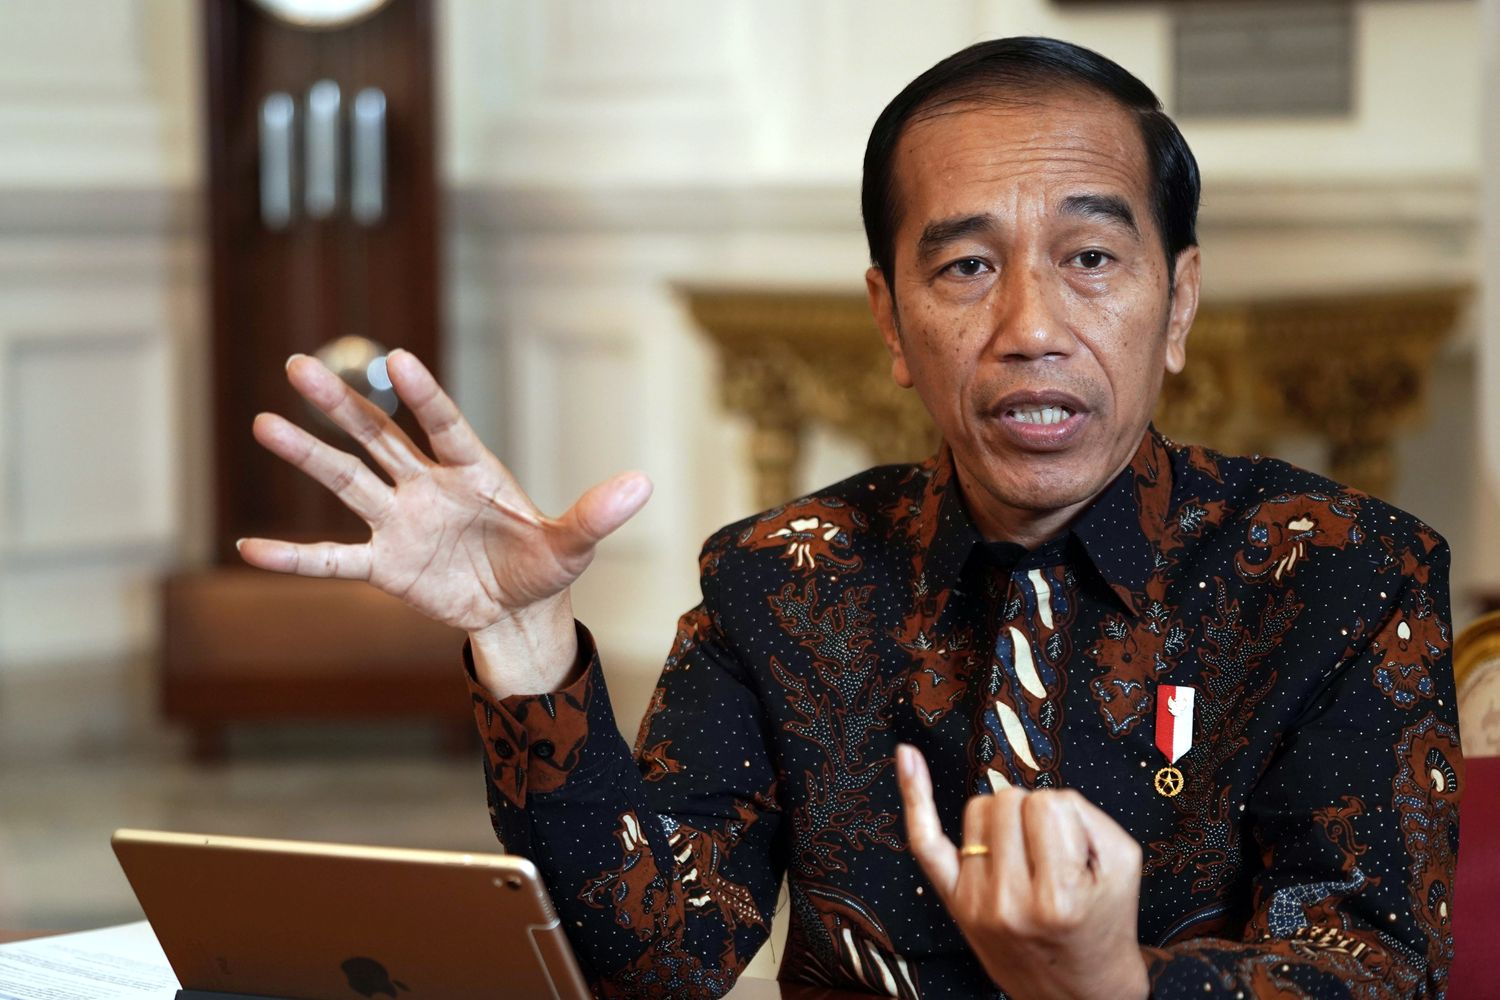 Joko Widodo, Indonesia's president, gestures as he speaks during an interview in Jakarta on Friday. (Blooomberg photo)